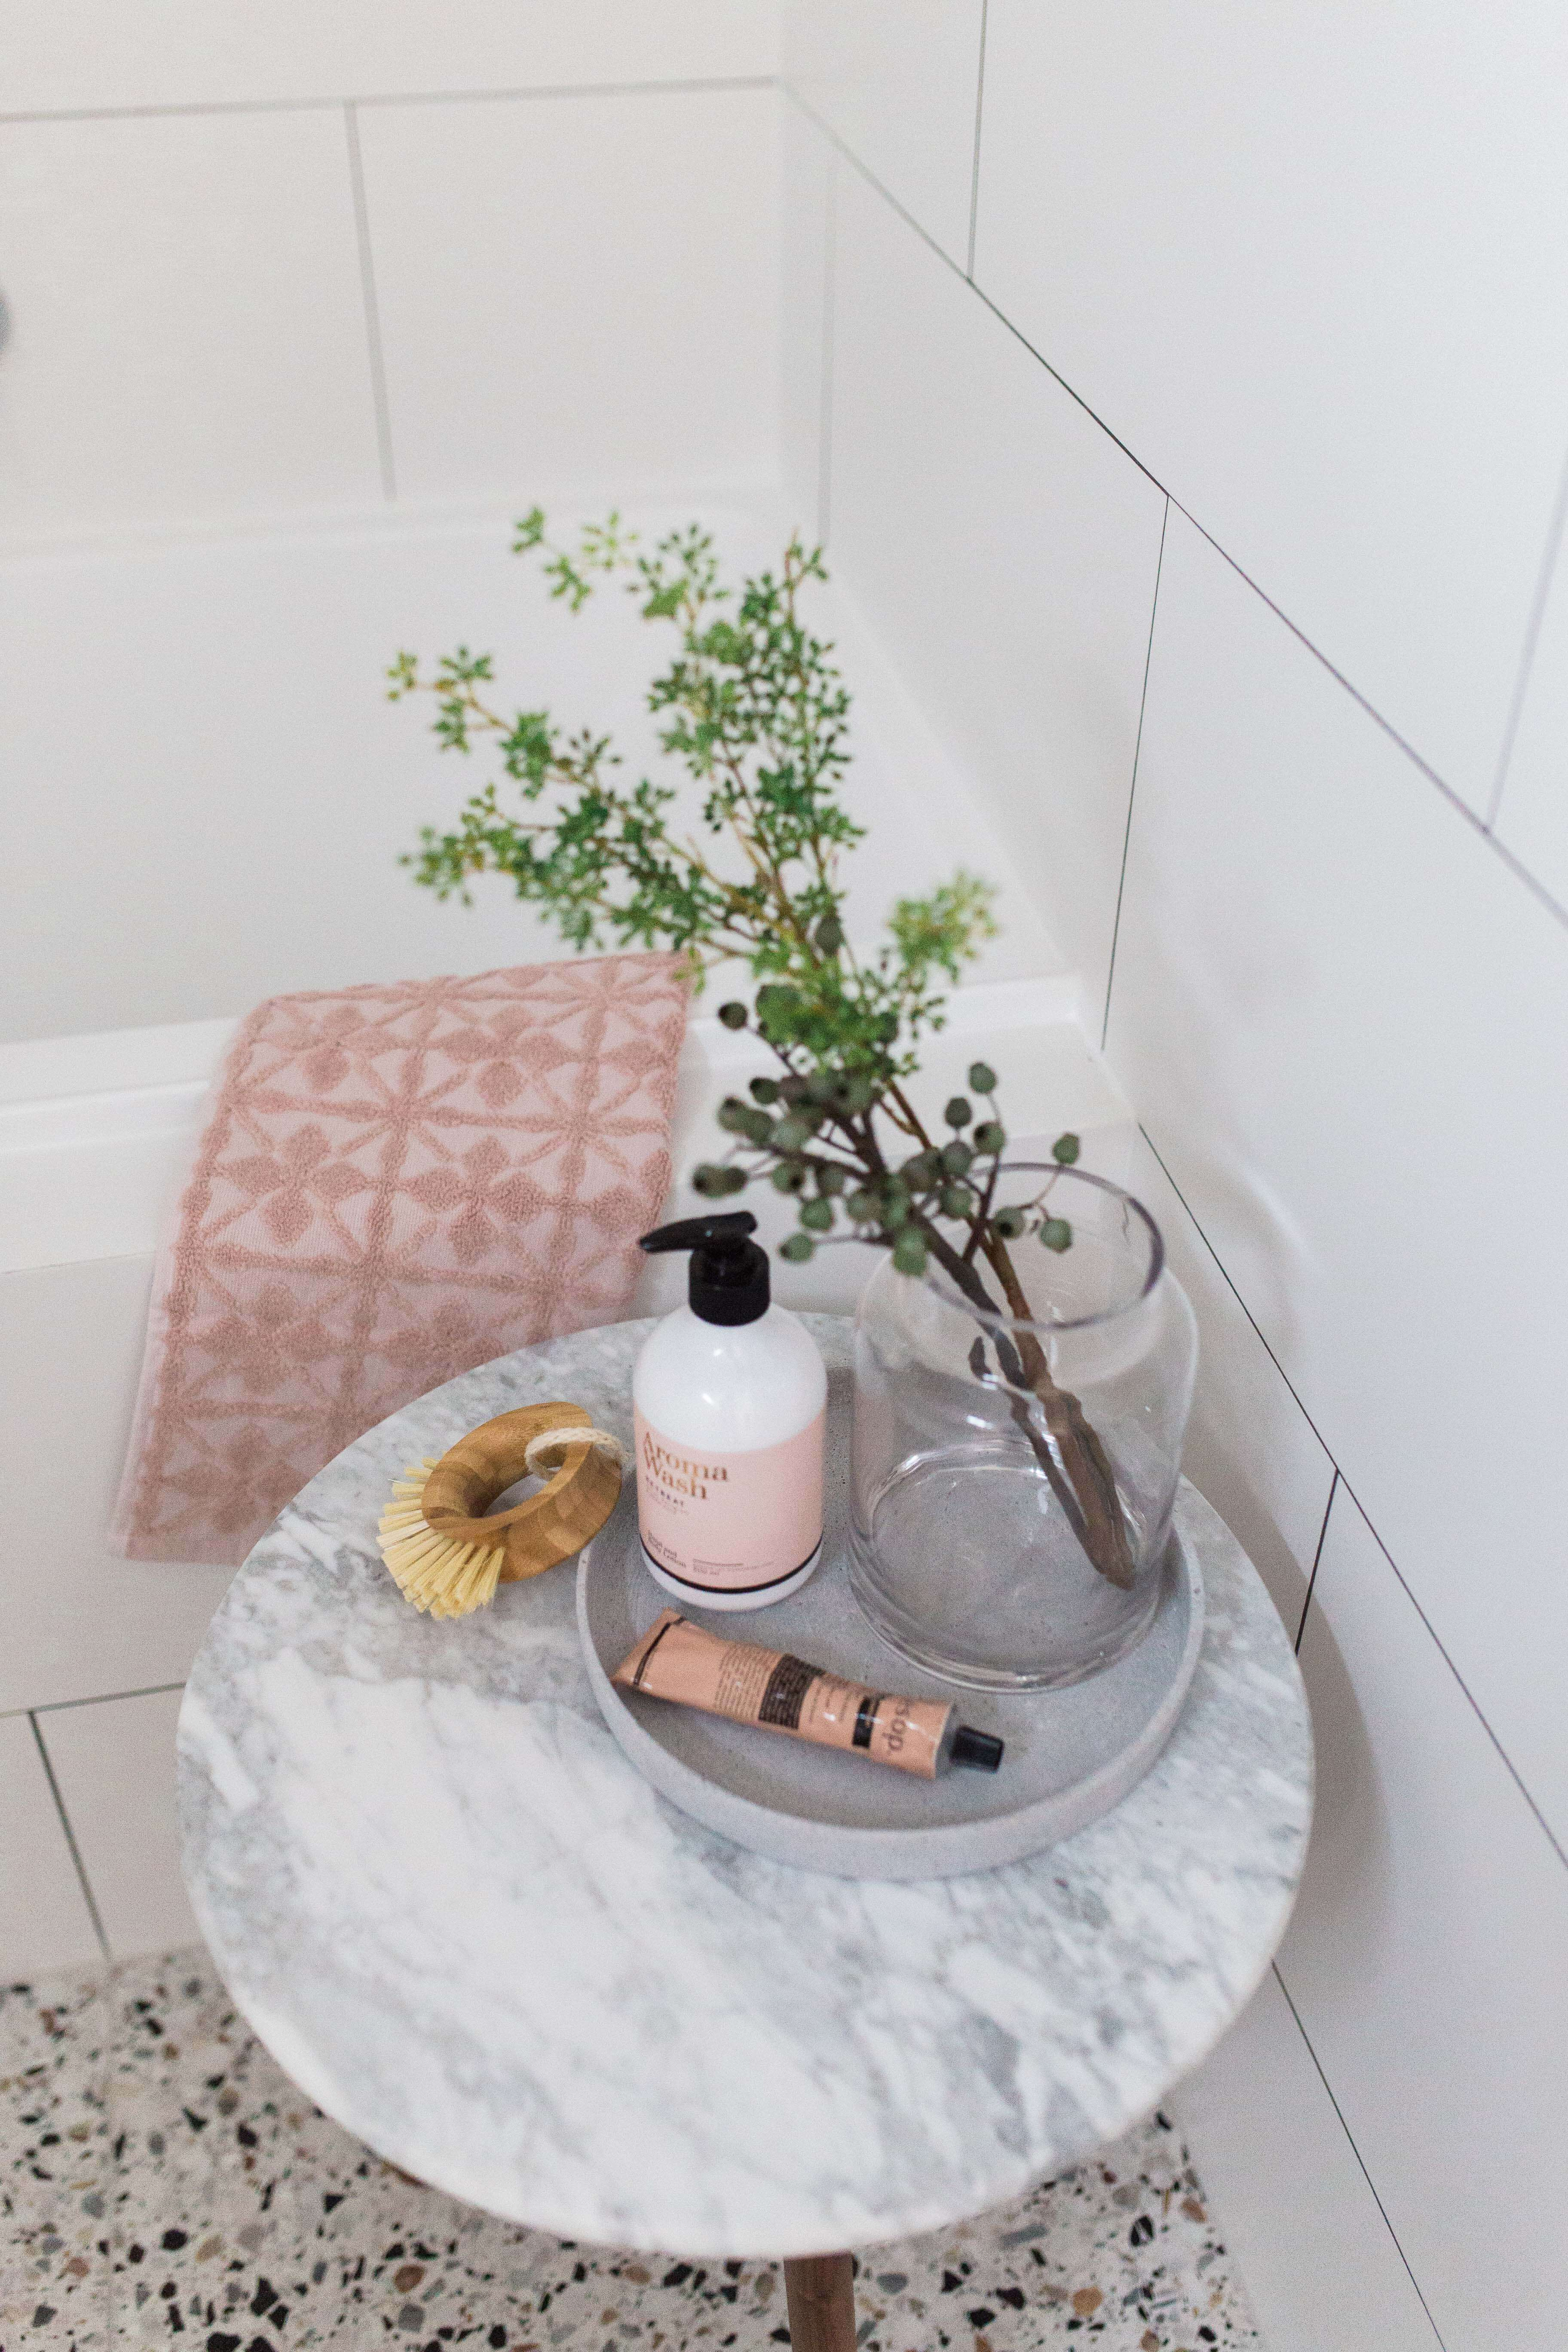 Marble bath side table with bathroom product